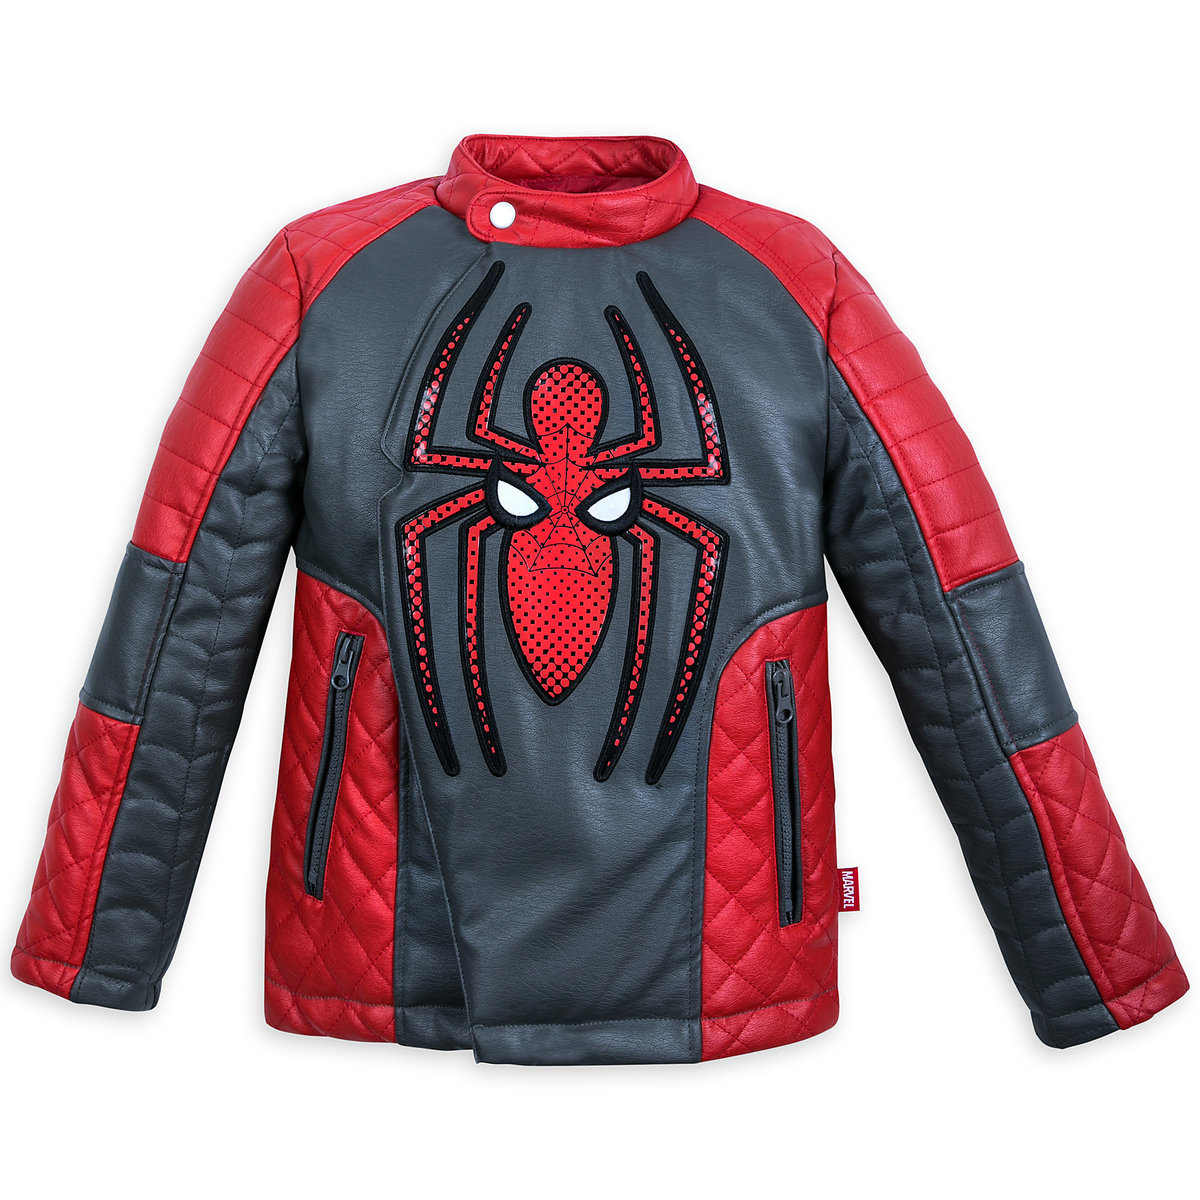 08b3a14a3 Product Image of Spider-Man Faux Leather Jacket for Kids # 1